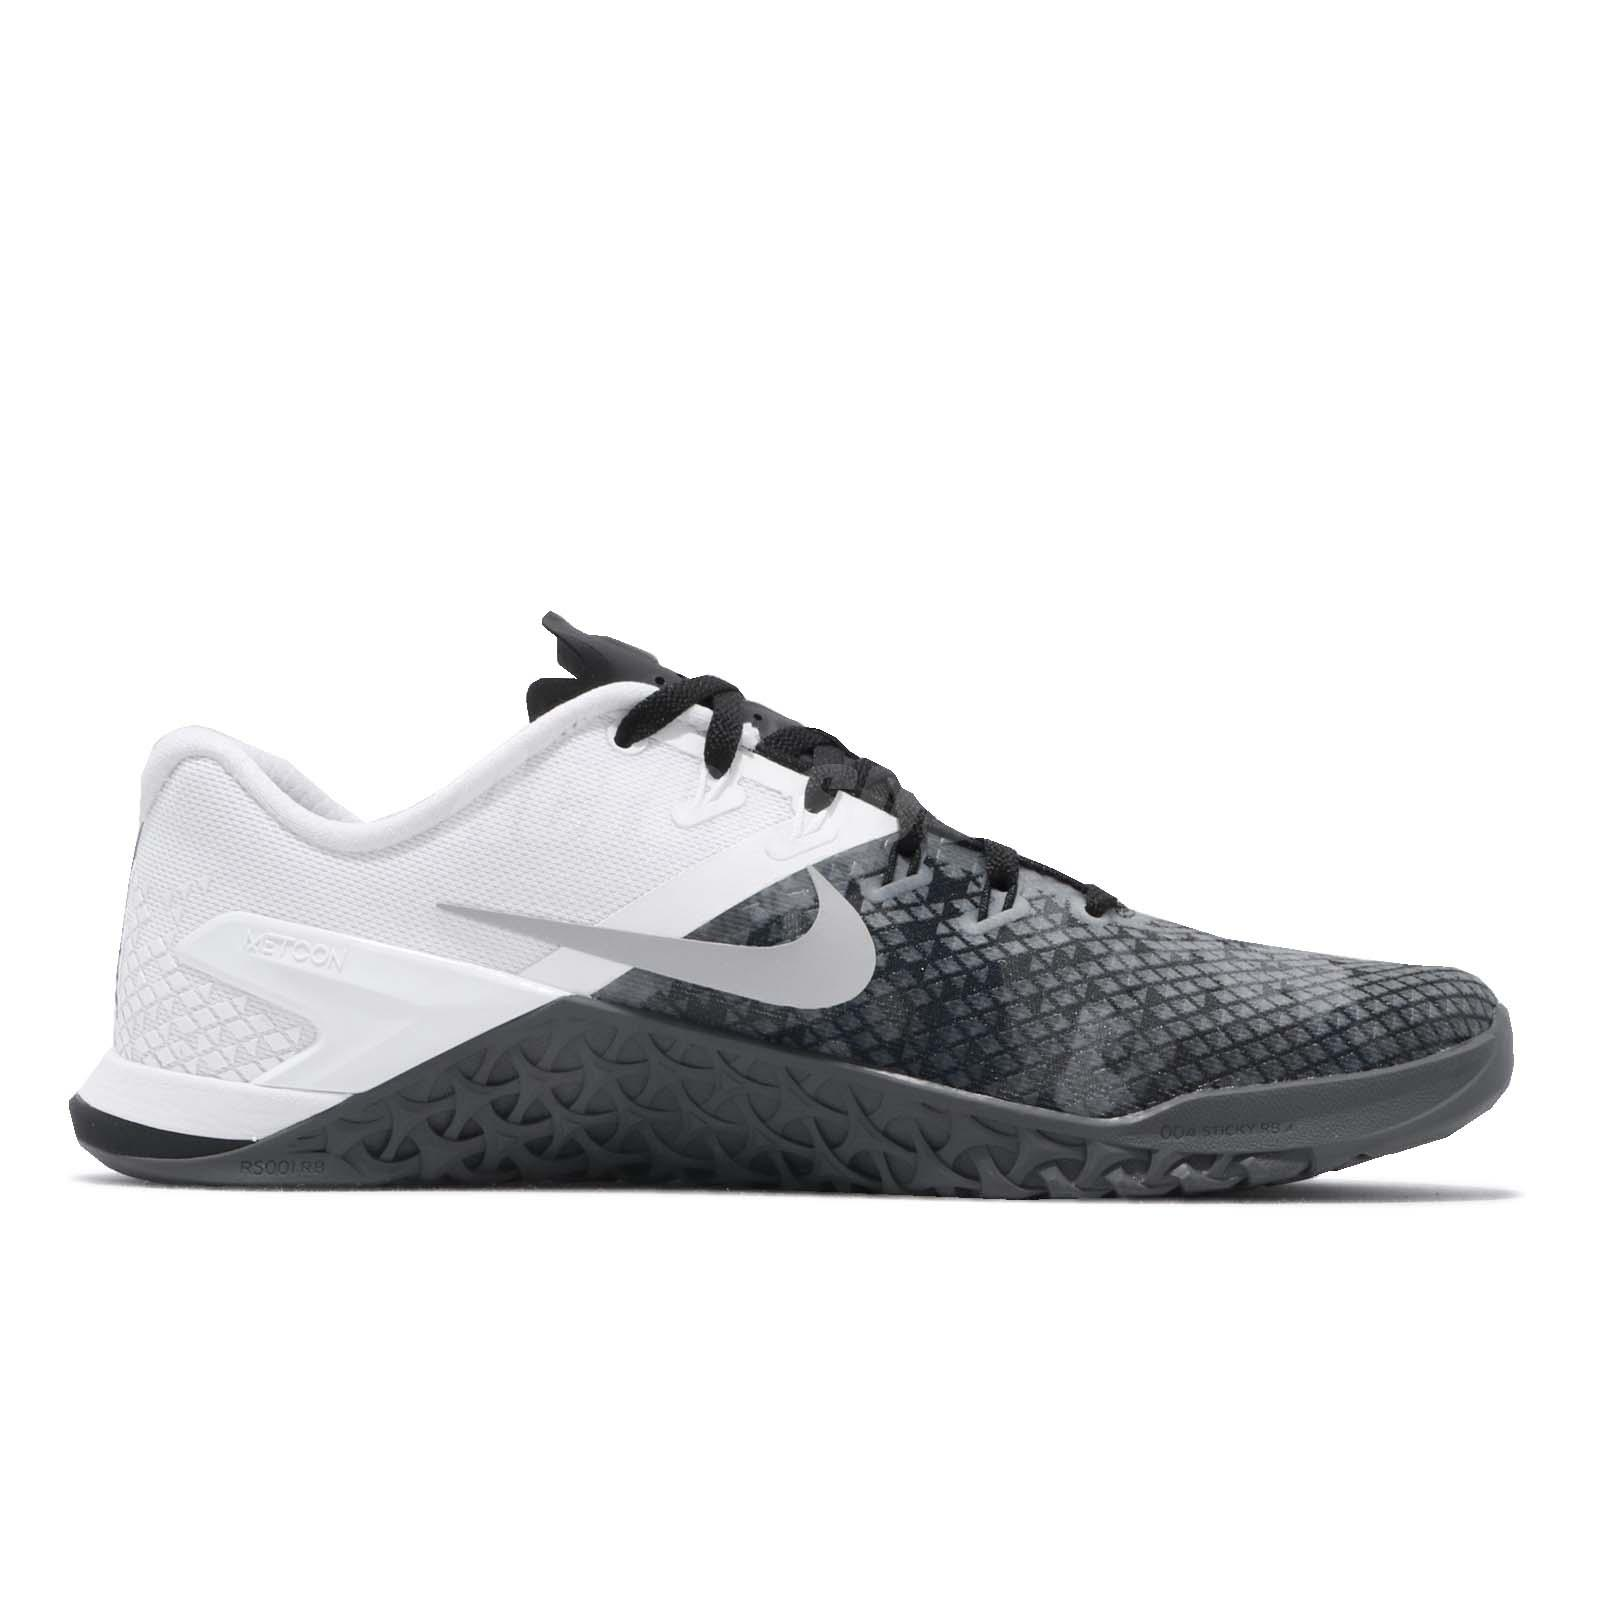 4c368173dfe0 Nike Metcon 4 XD Black Grey Men Cross Training Weight Lifting Shoes ...